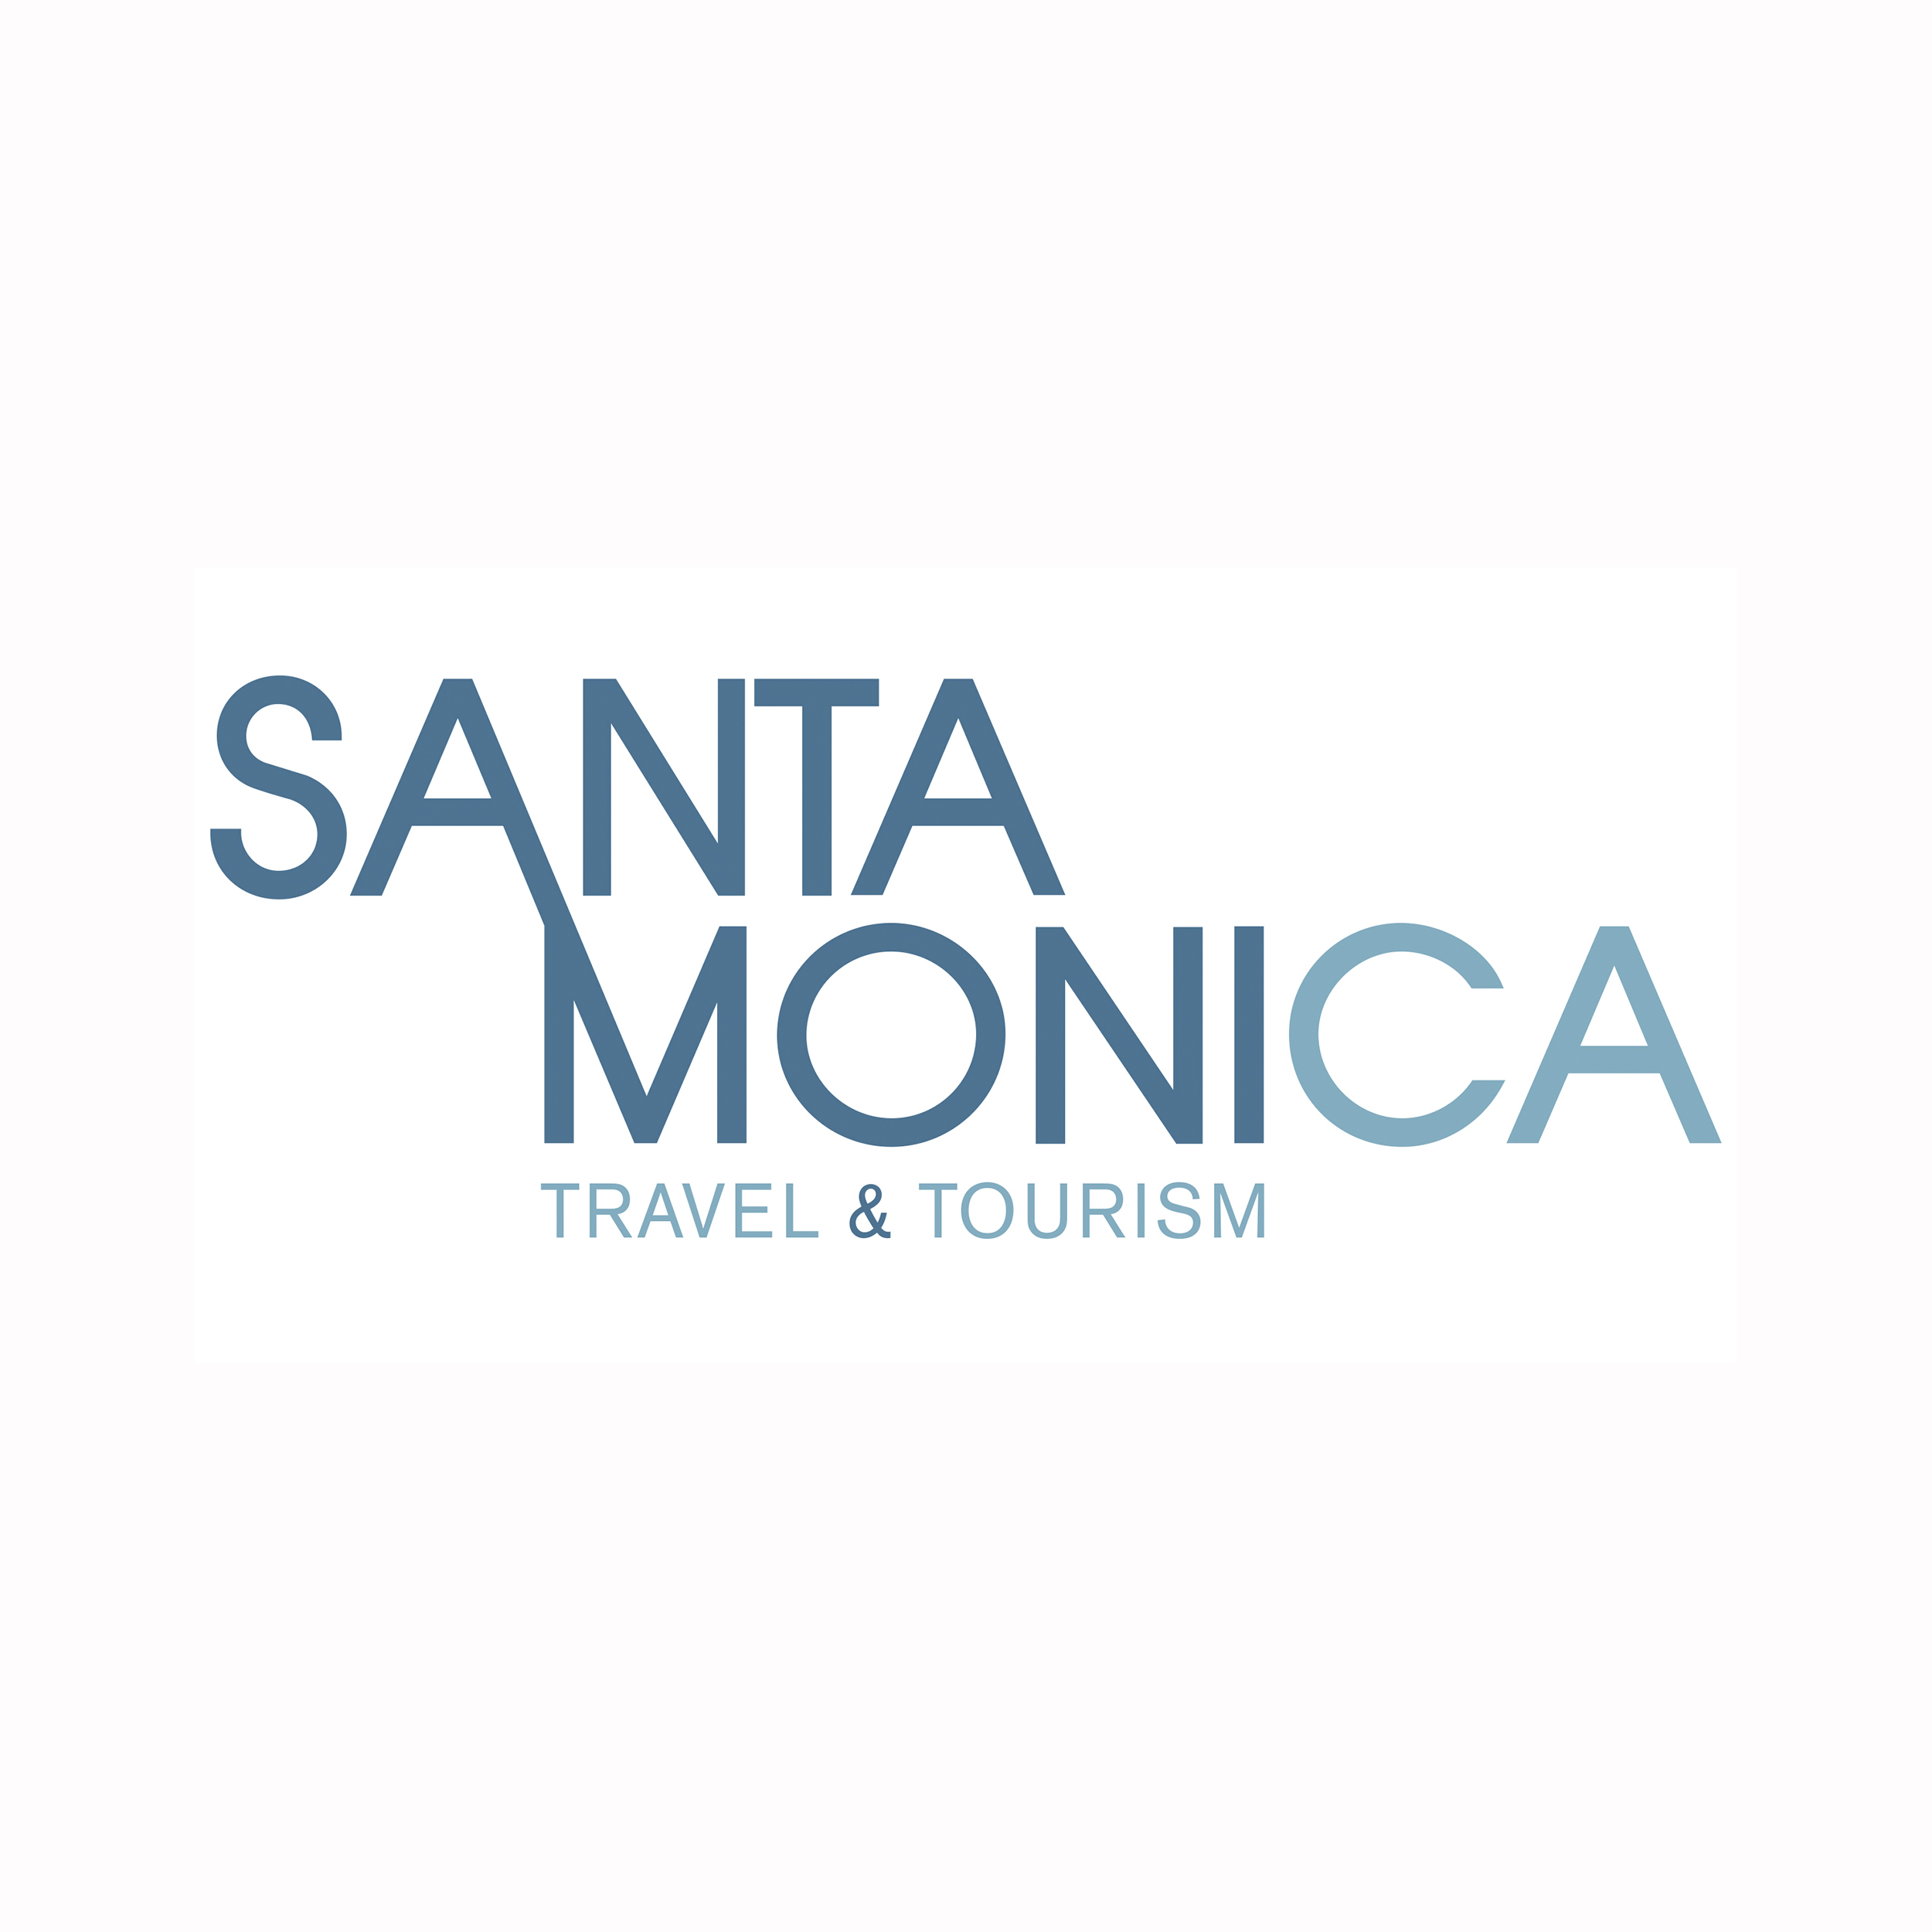 SANTA MONICA TOURISM TRAVEL.jpg